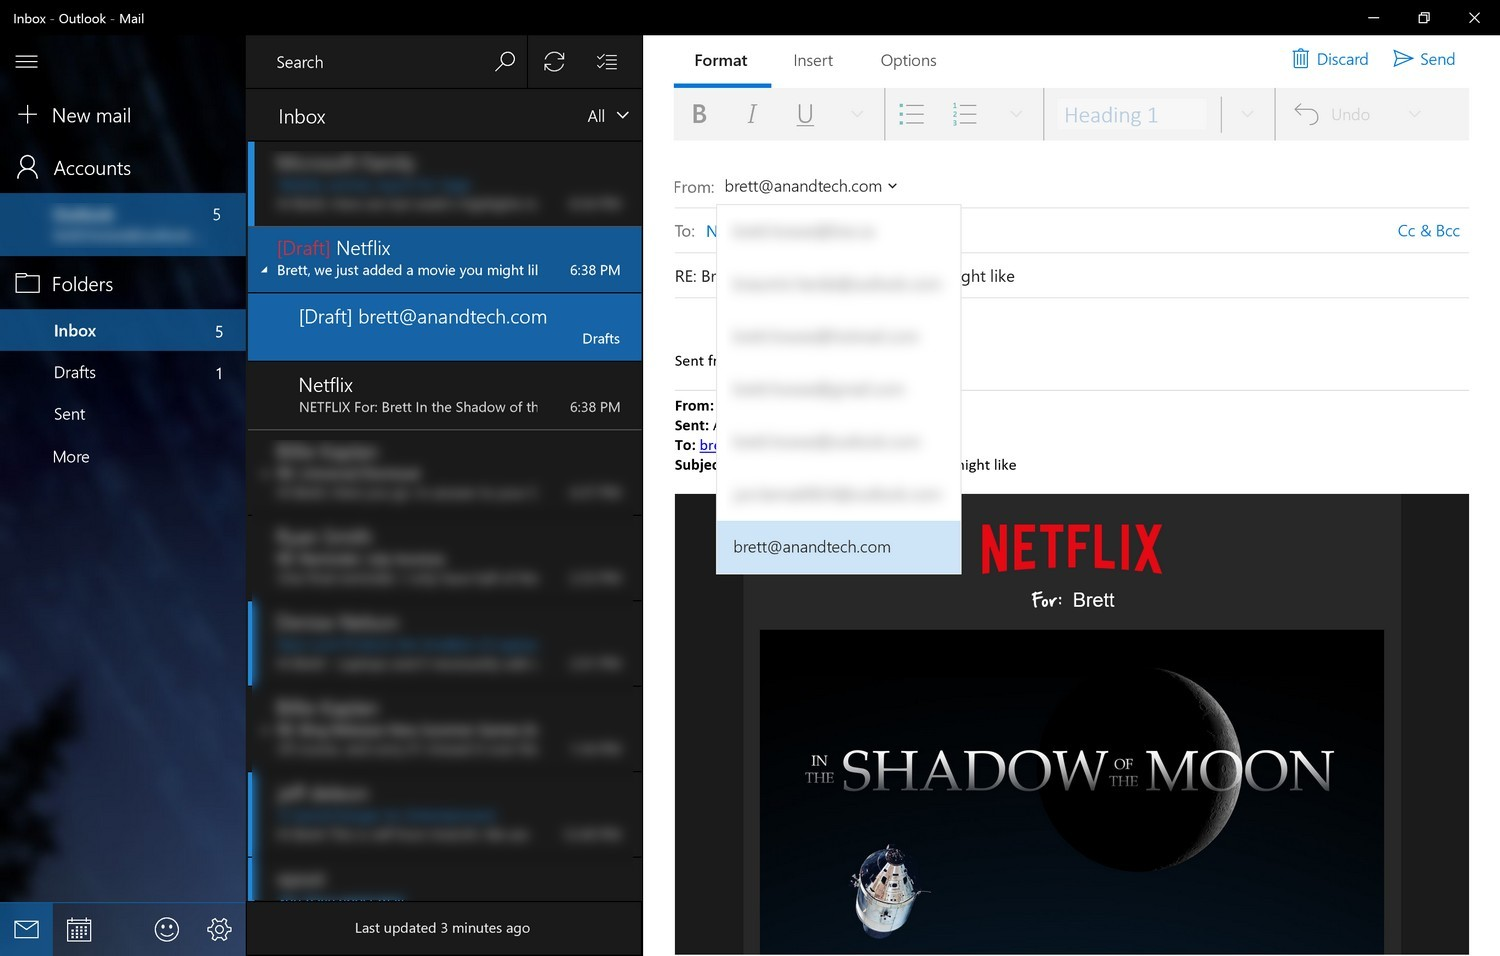 New Features And Built-In App Updates - Windows 10